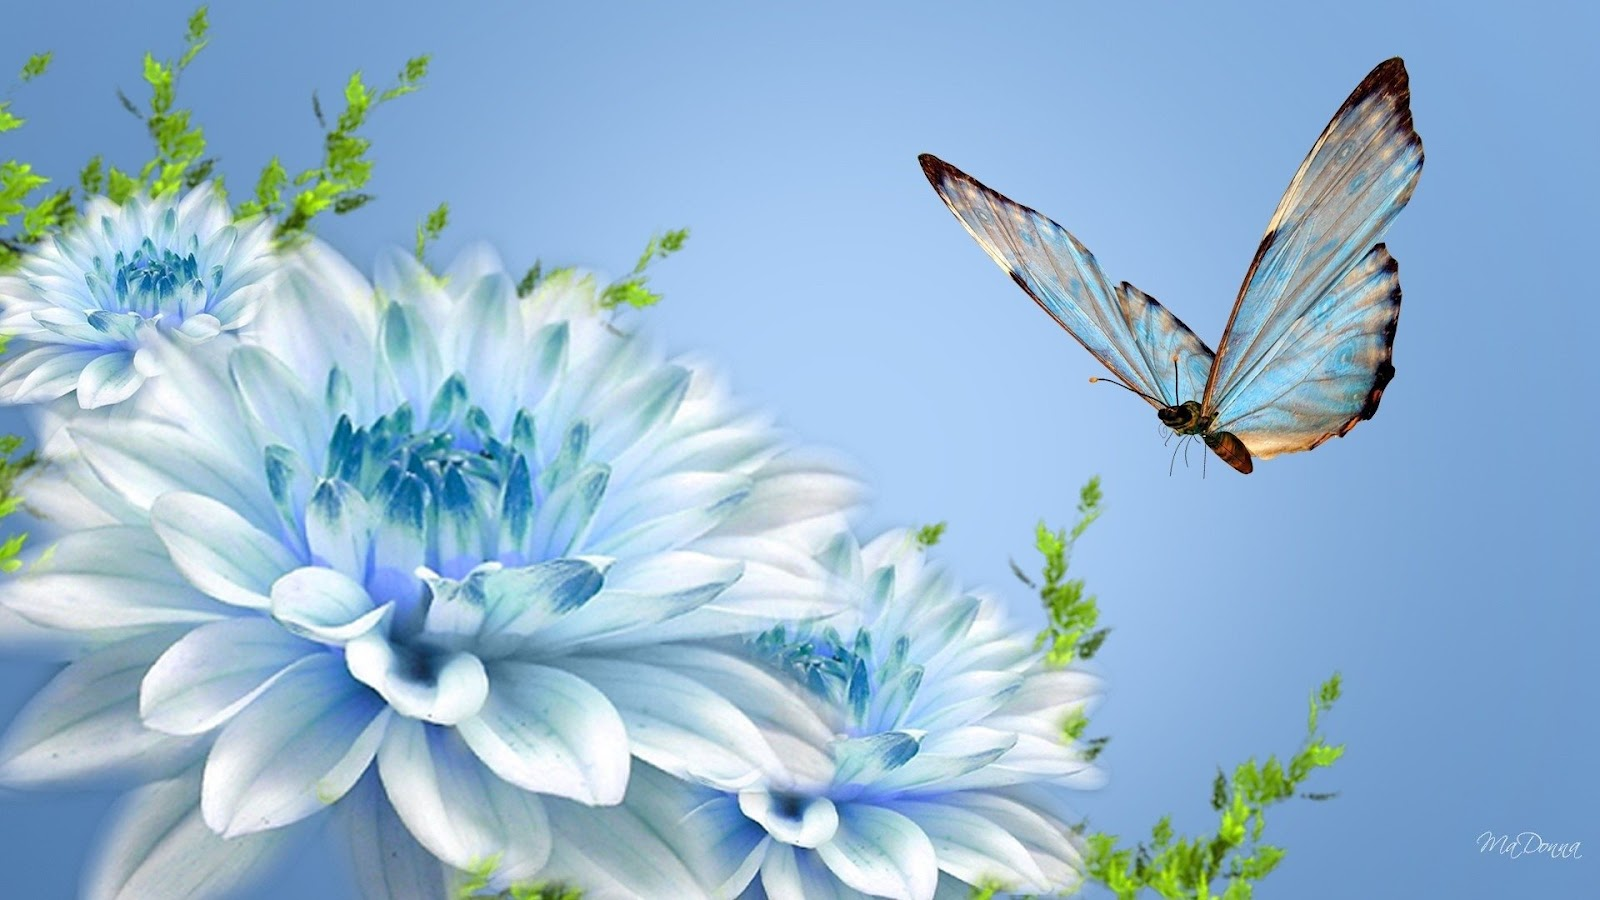 Mystery Wallpaper: Blue Butterfly and Blue Flower